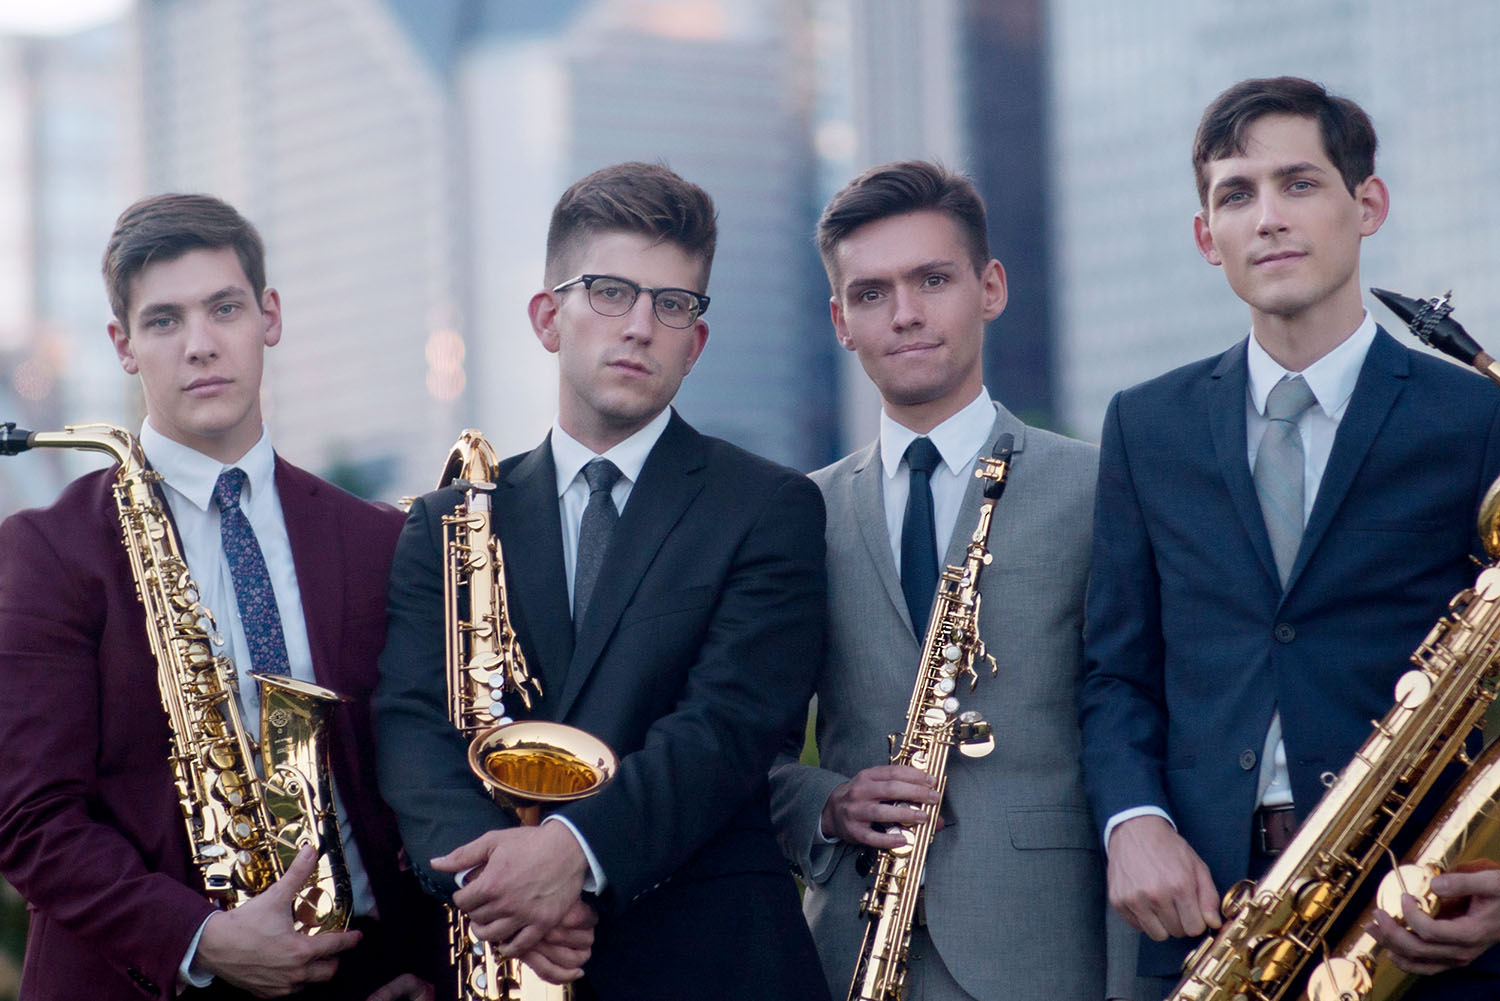 ~Nois, a Chicago-based saxophone quartet, is performing 7:30 p.m. March 14 as part of the UNK New Music Festival. The festival features four concerts in UNK's Fine Arts Recital Hall, all of which are free and open to the public. (Courtesy photo)